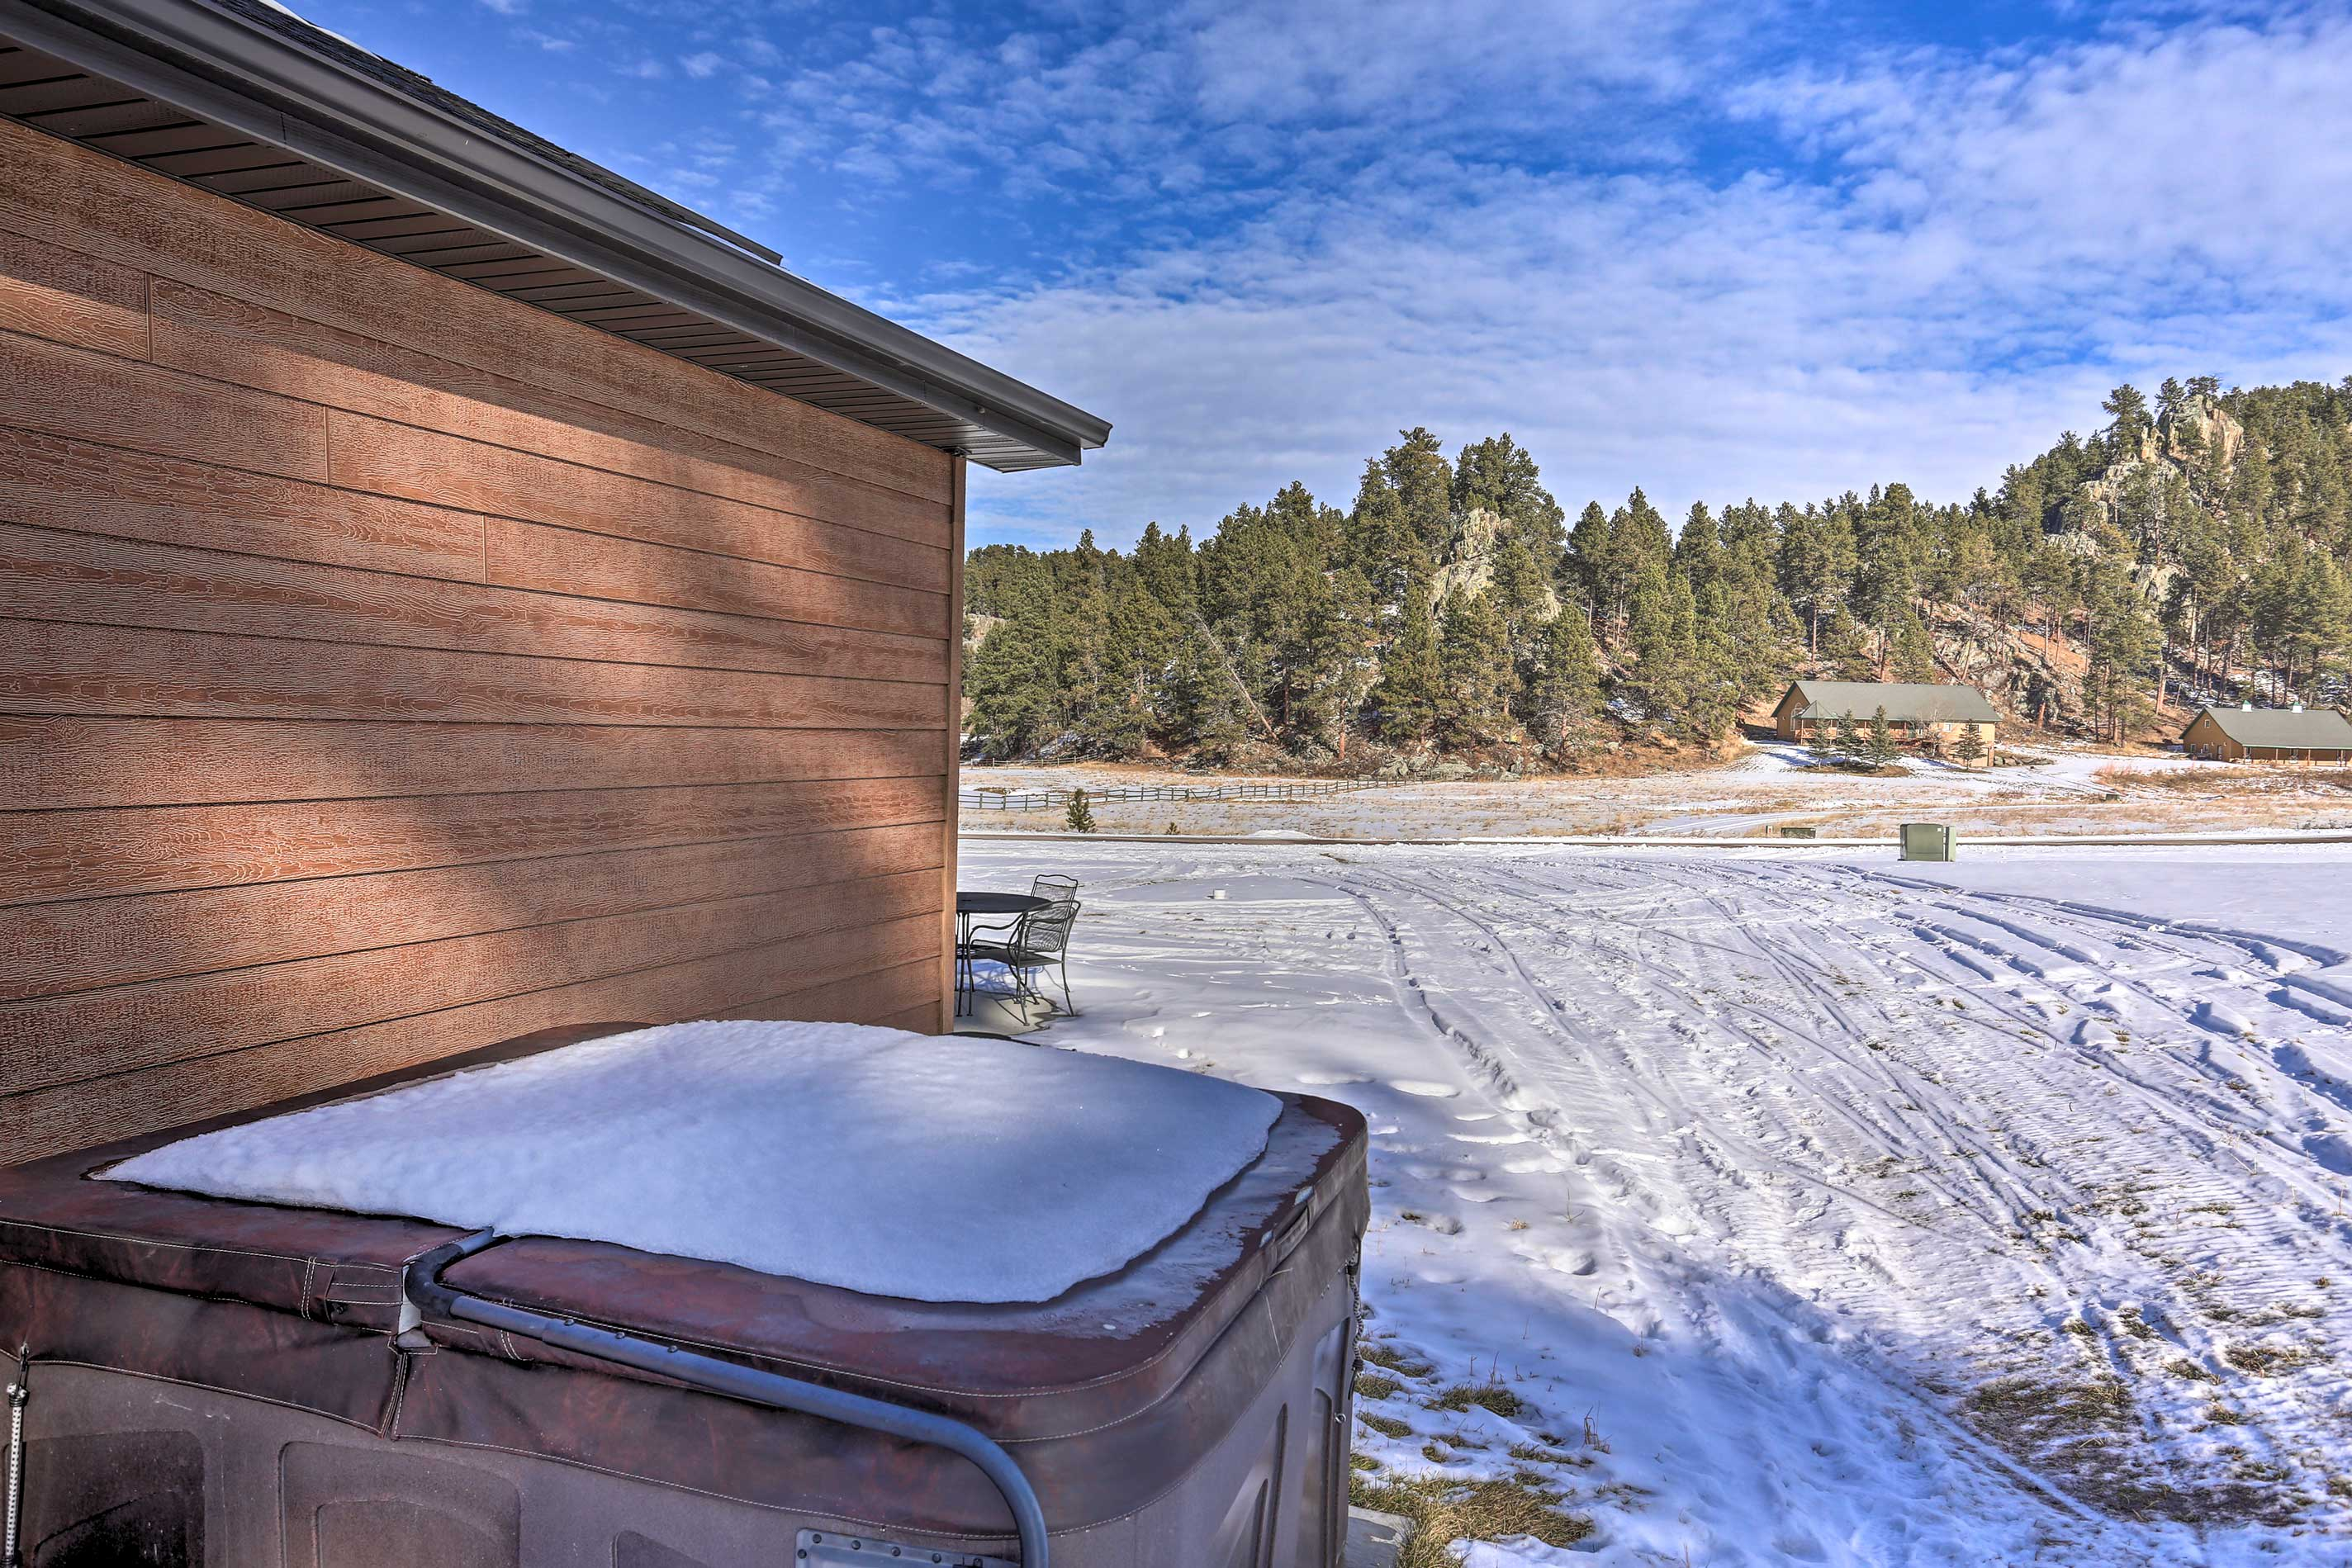 After a day of hiking, soak your sore muscles in the private hot tub.